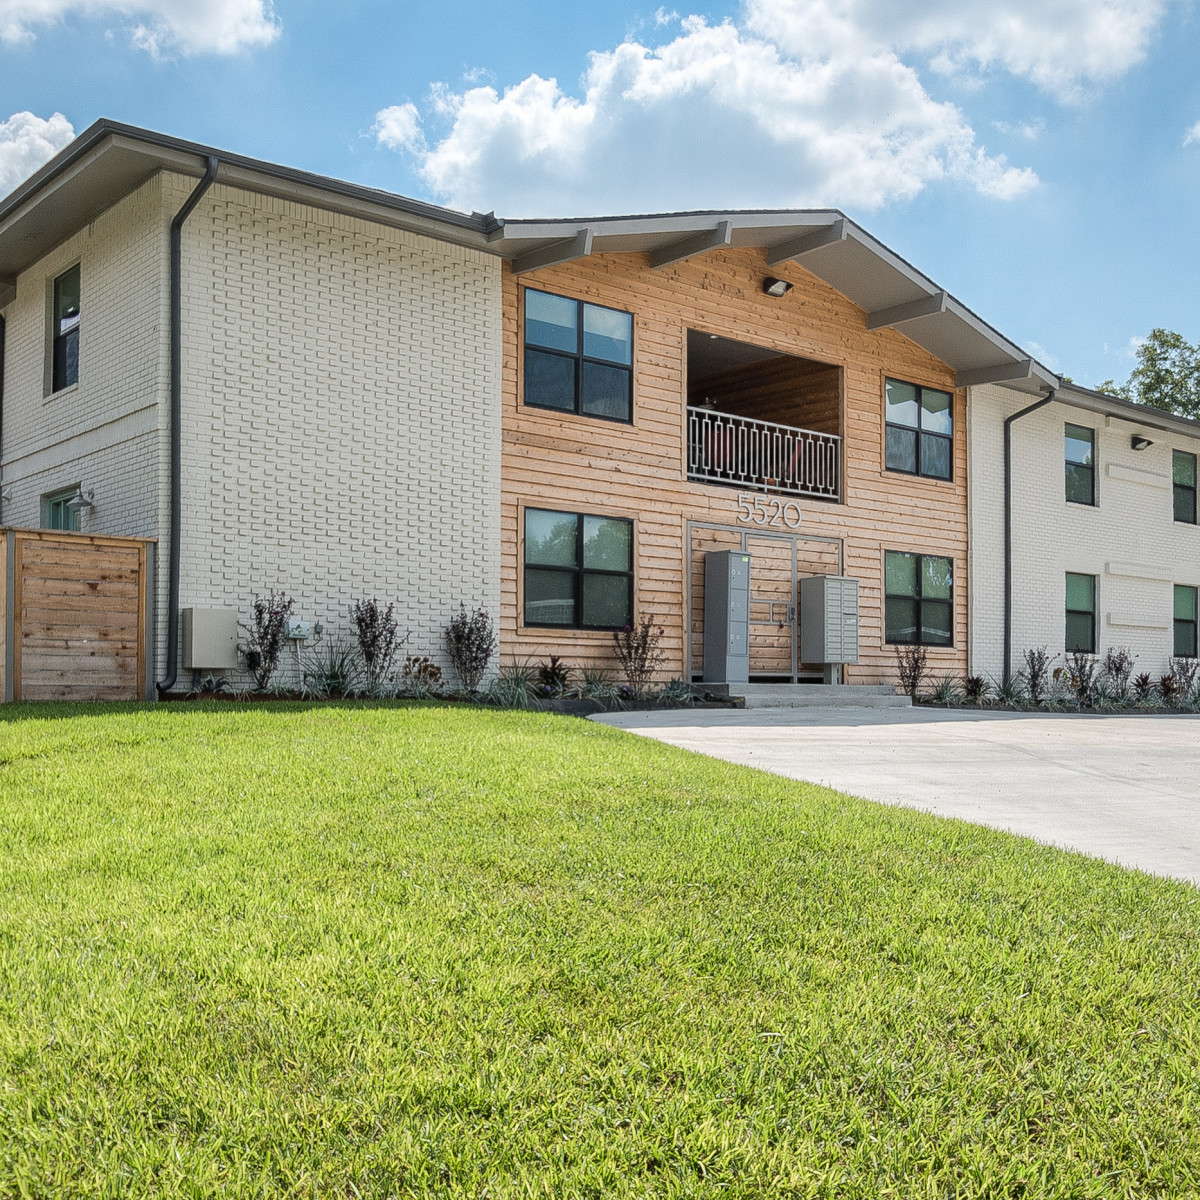 Royal Palms Apartments: Renovated Apartment Building In East Dallas Says Nyet To